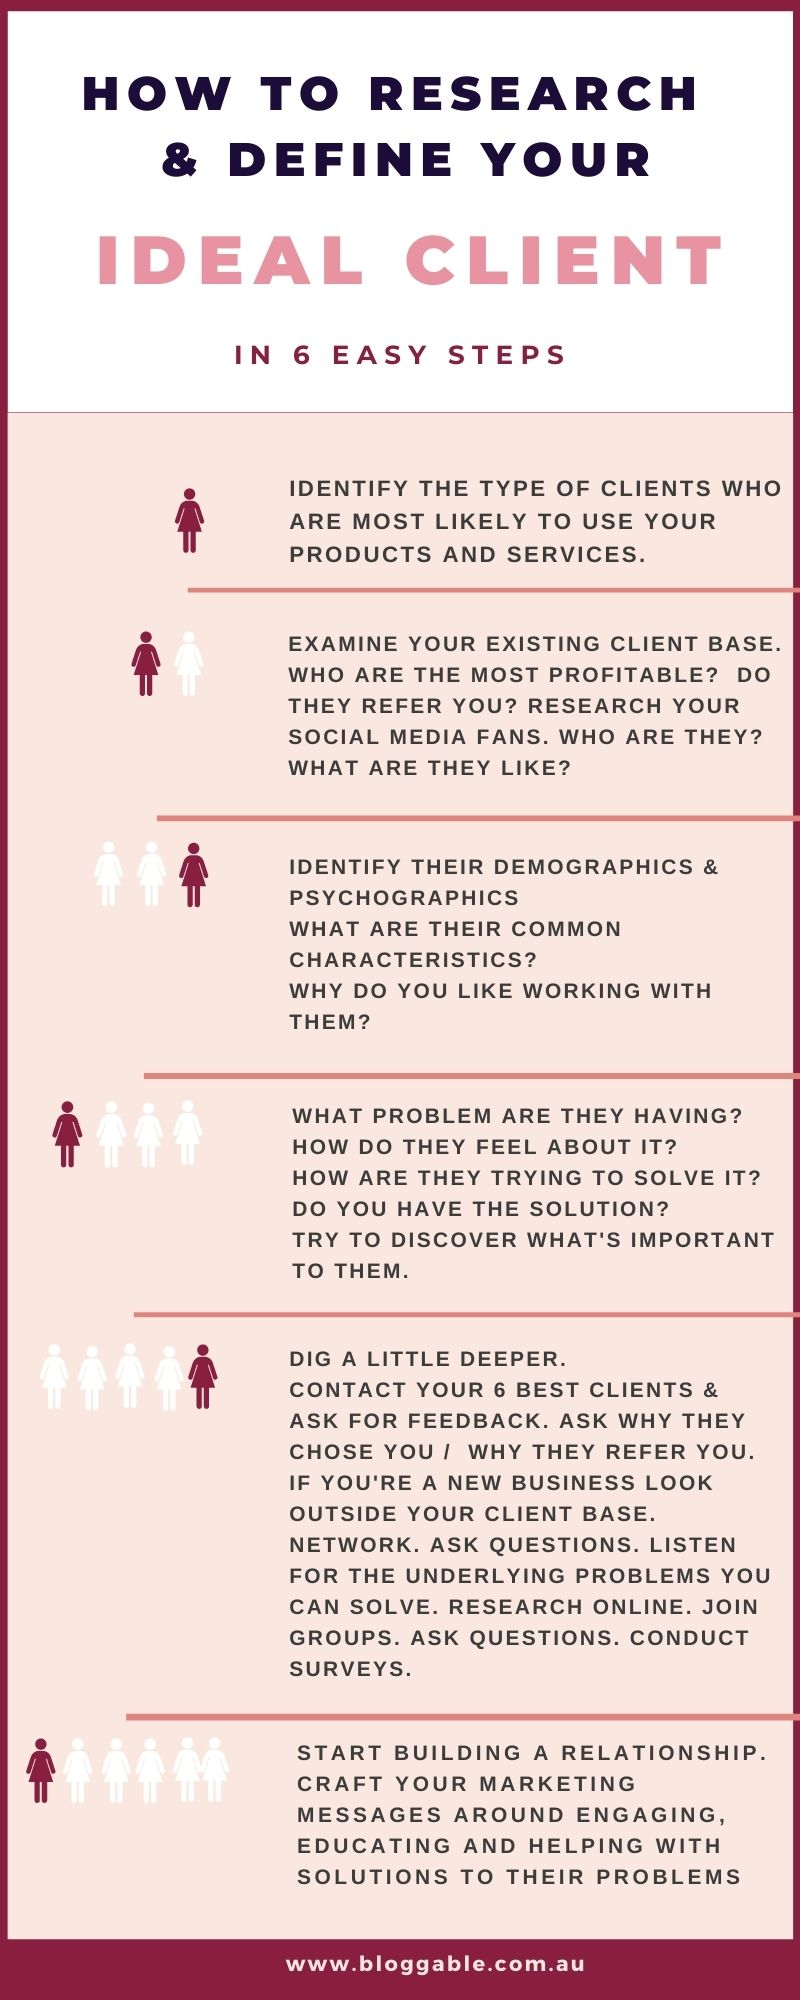 Infographic steps to research ideal target audience